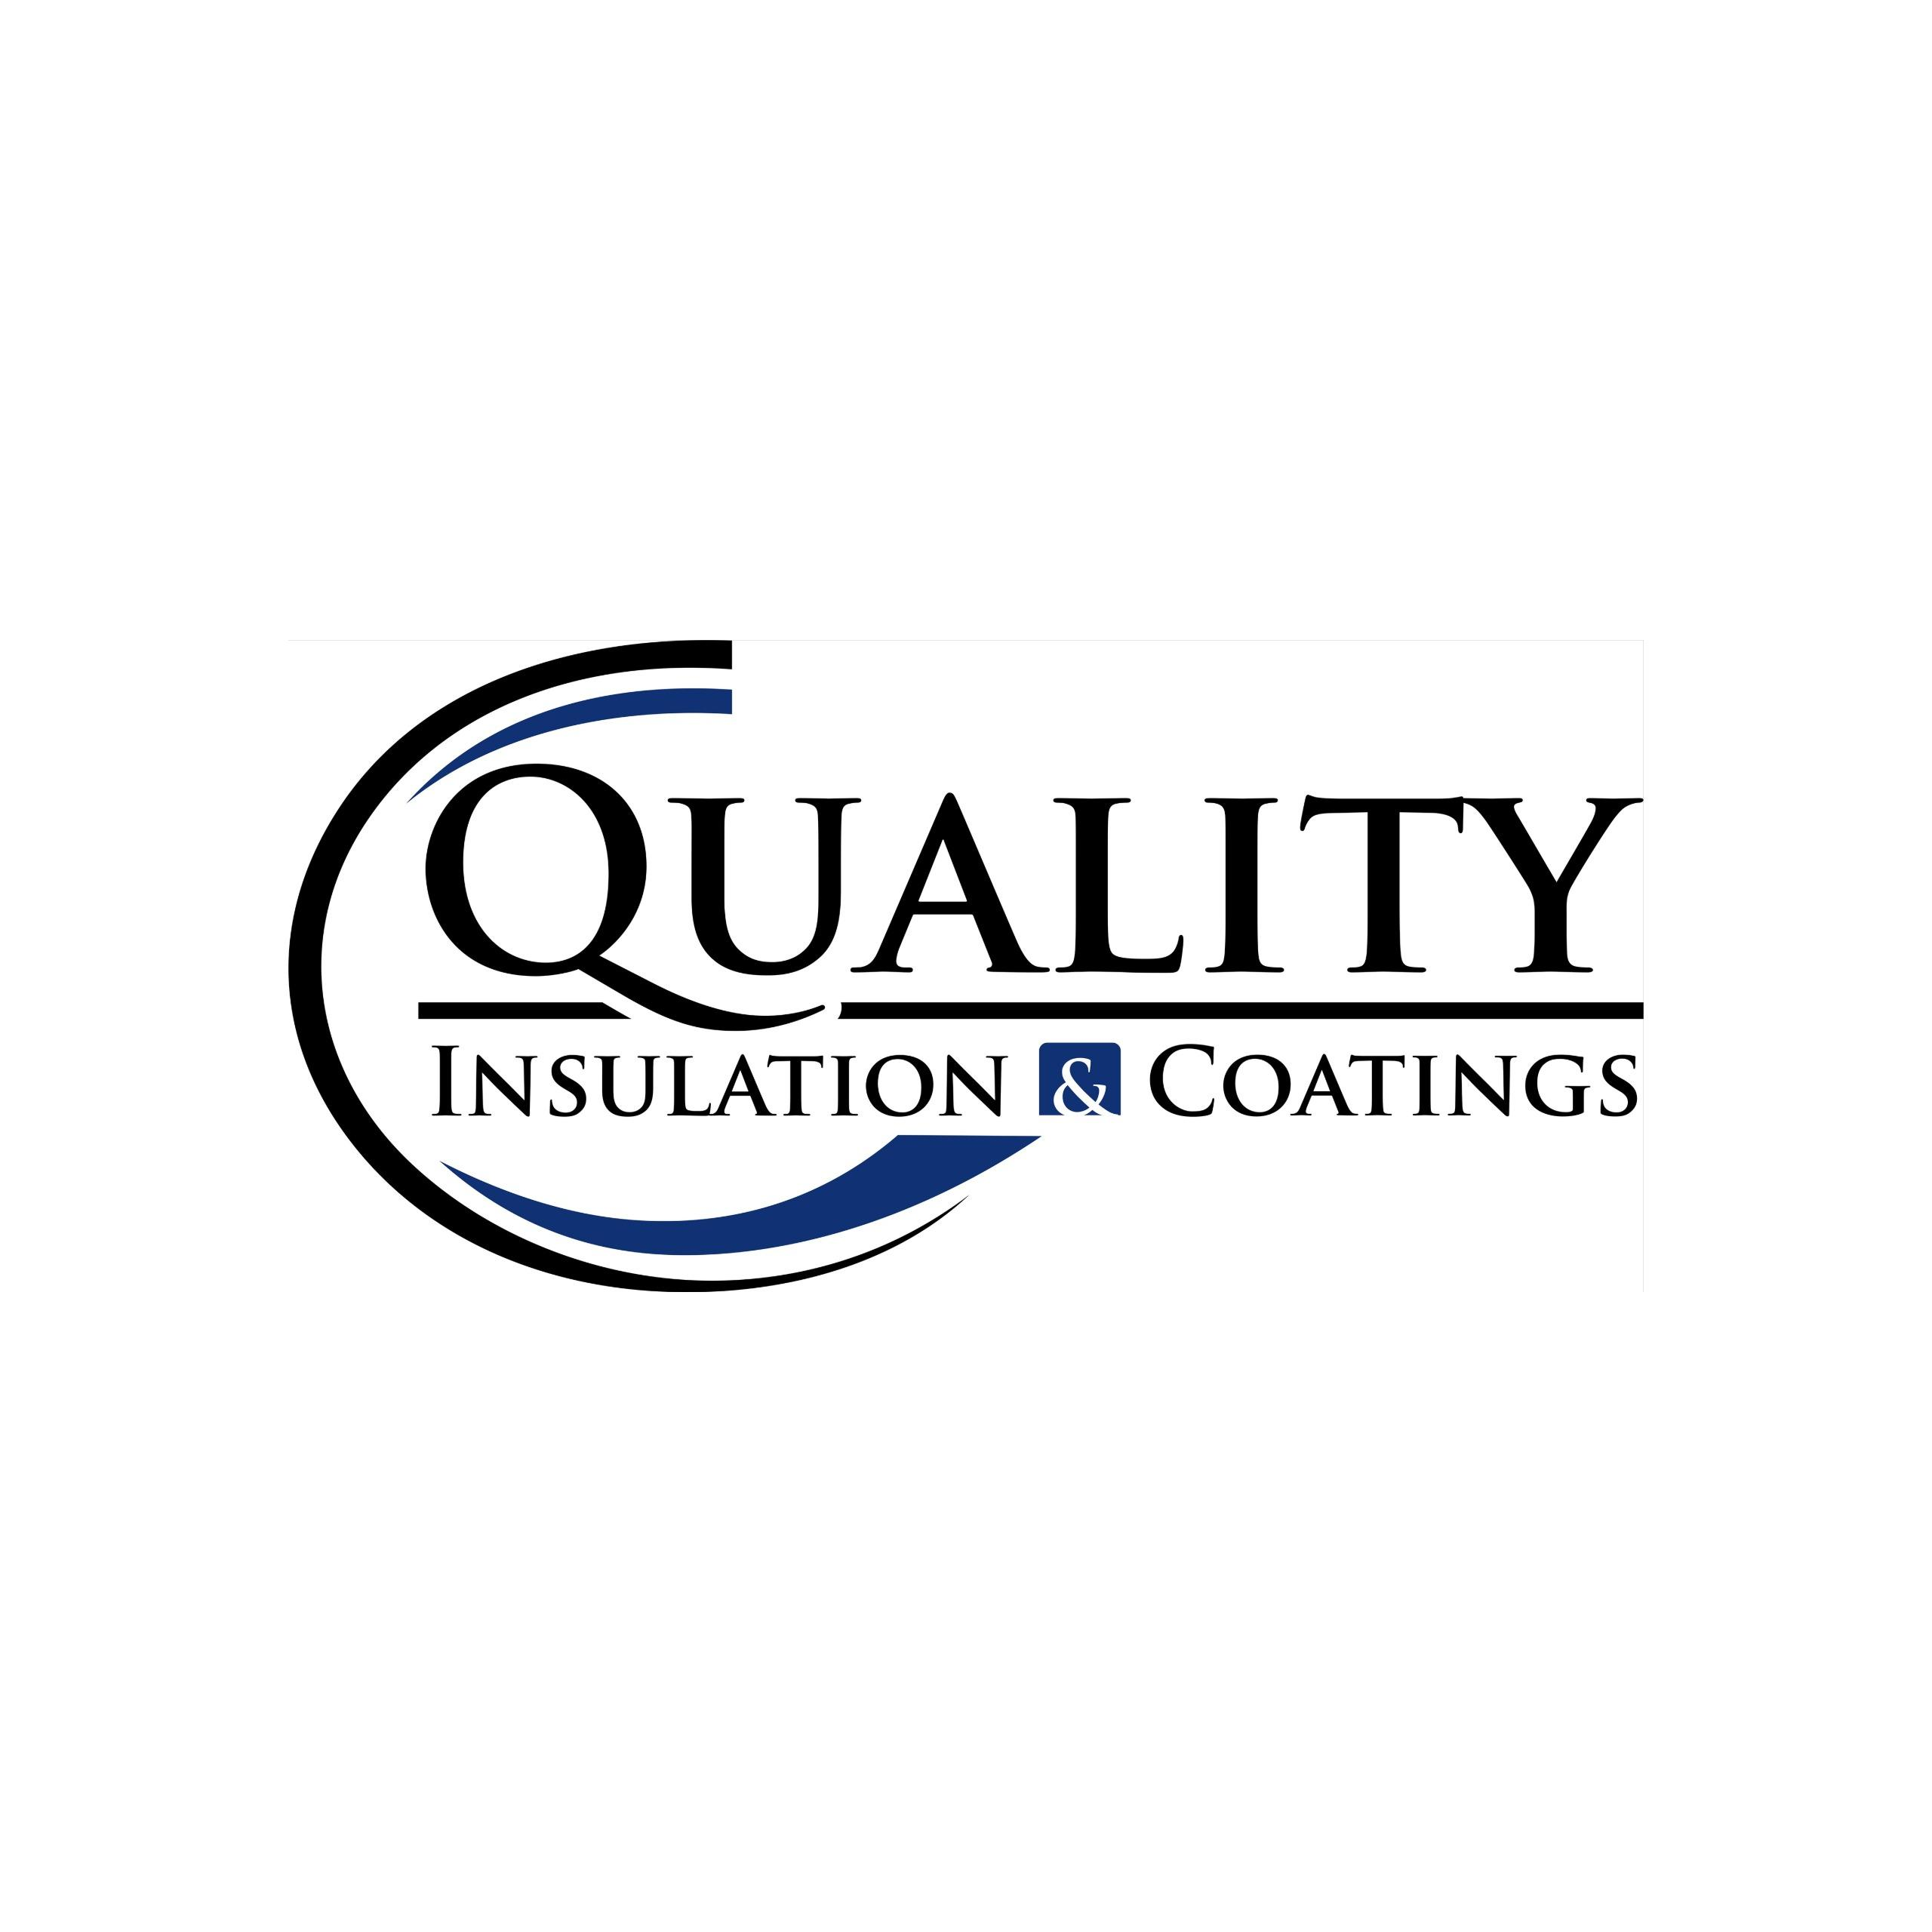 Quality Insulation & Coatings